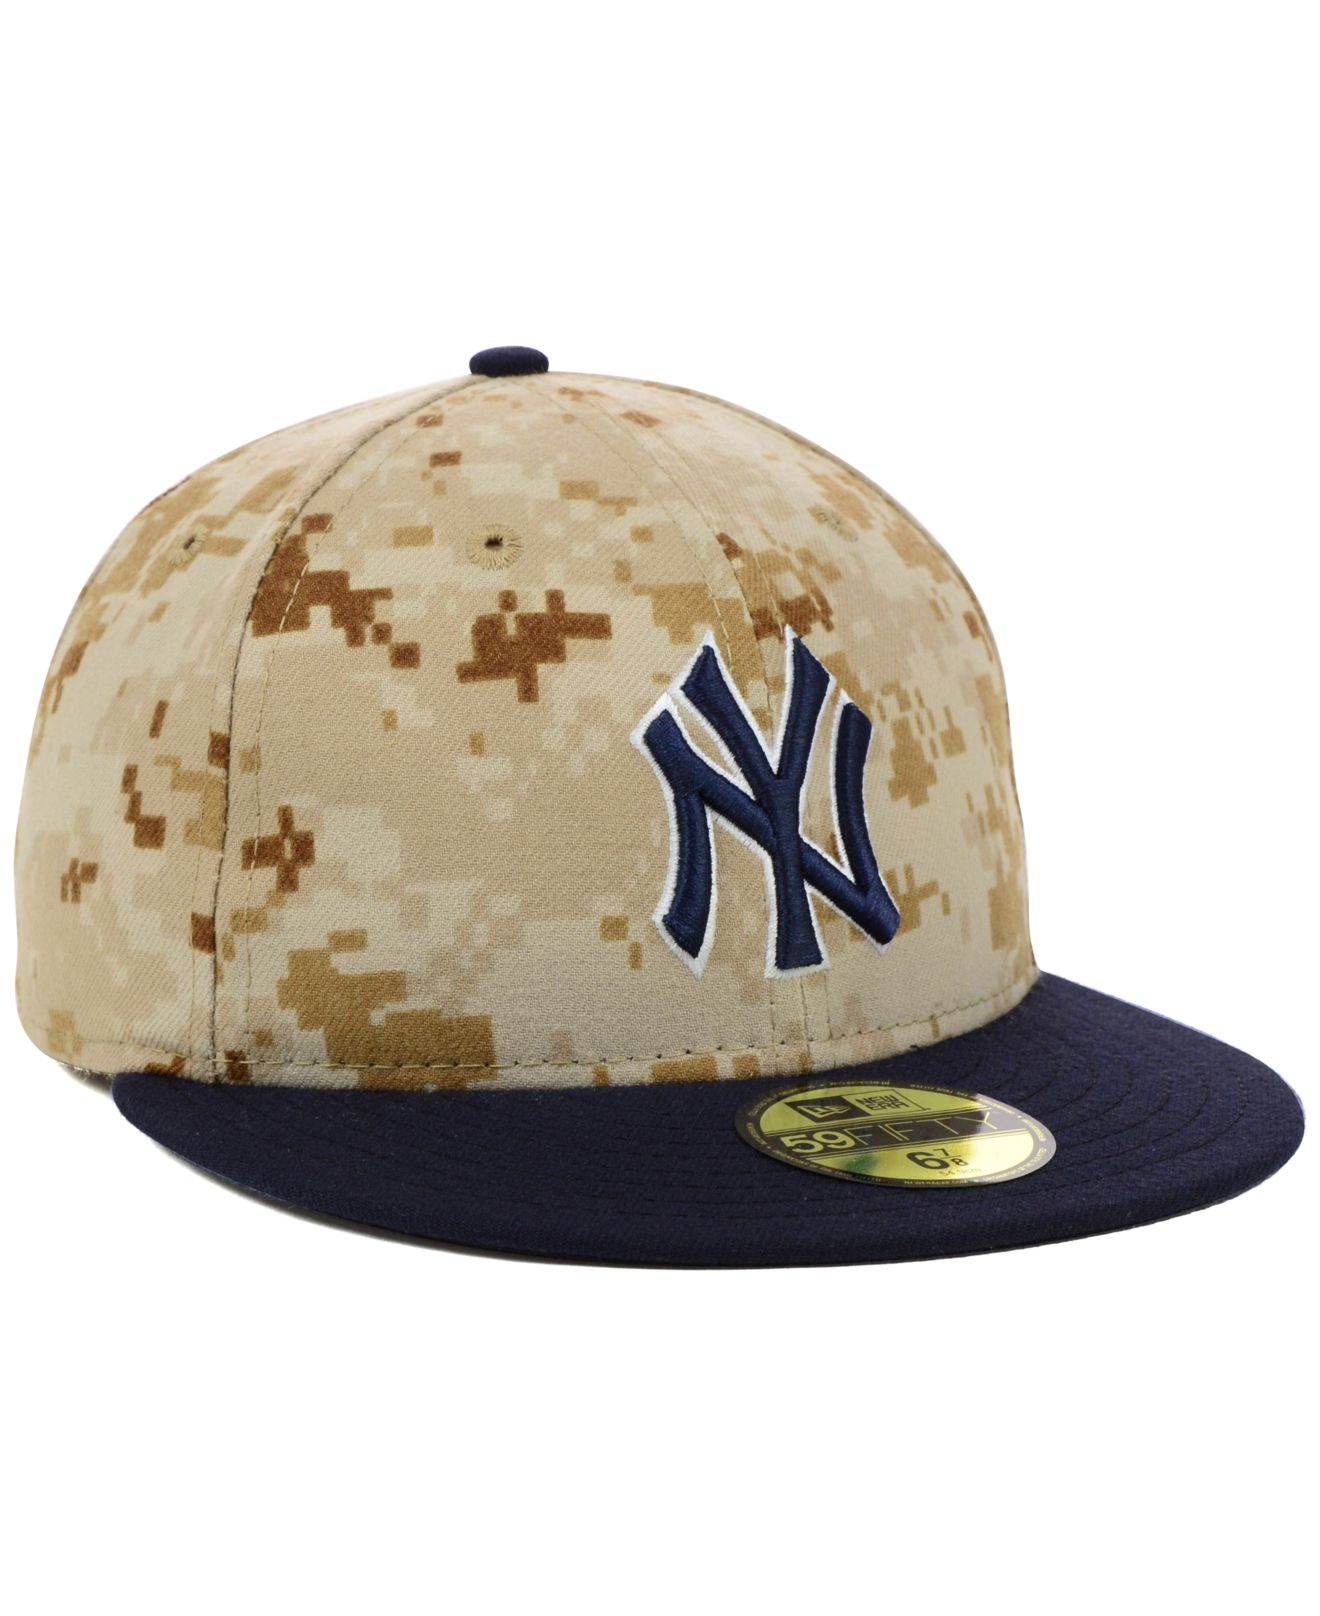 Lyst - KTZ New York Yankees 2014 Stars And Stripes 59fifty Cap in ... cd001328cbc